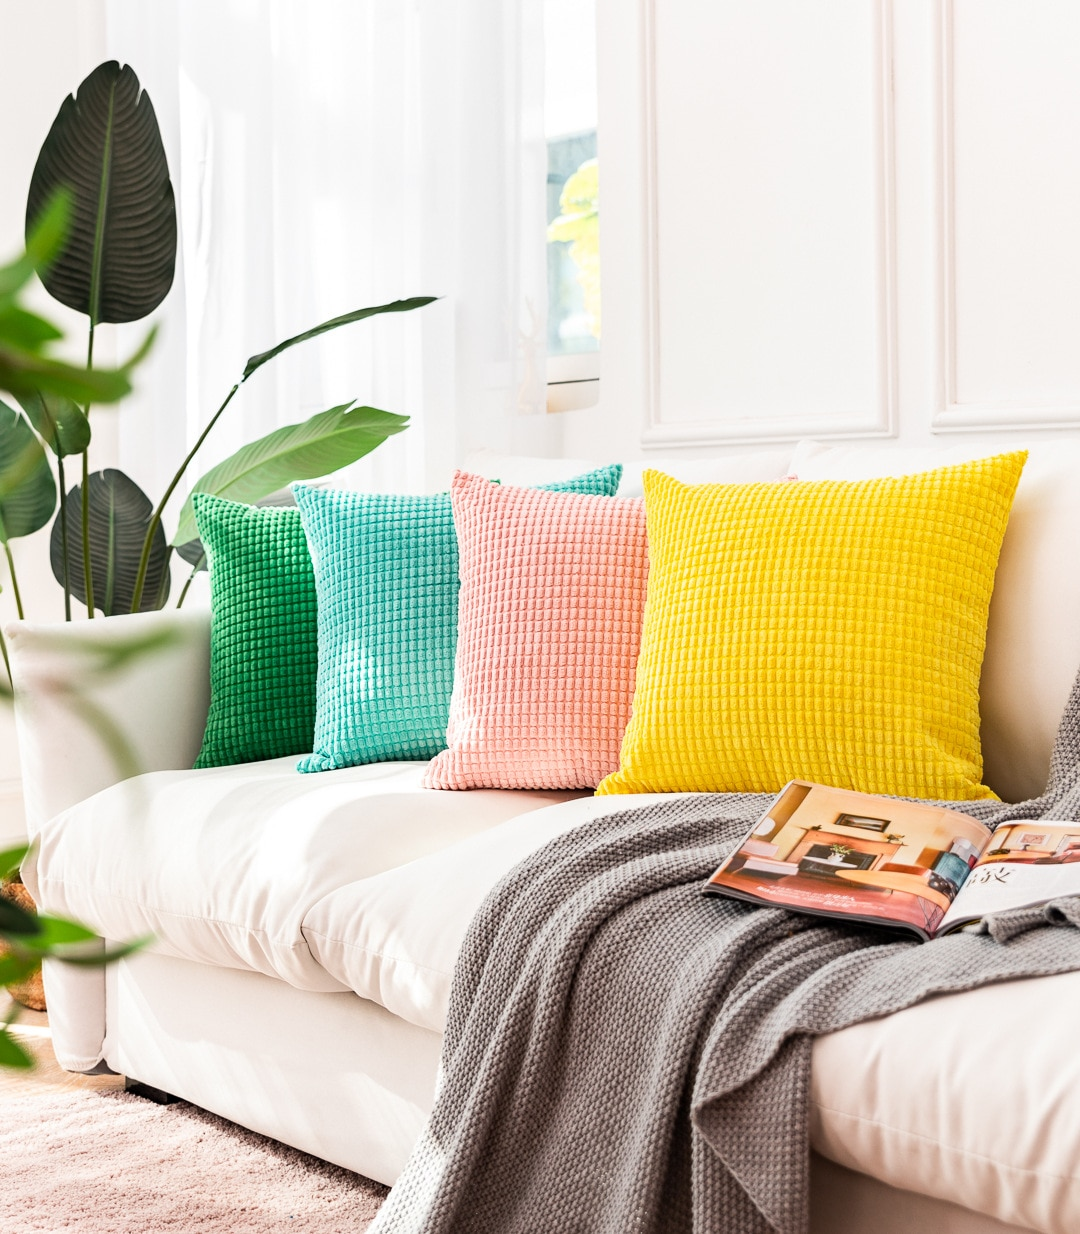 AliExpress - 2021 Throw Velevt Cushion Cover For Sofa and Chair Decorative Plush Pillowcase For Couch, 40×40, 45×45, 50×50, 60×60, Muti Sizes